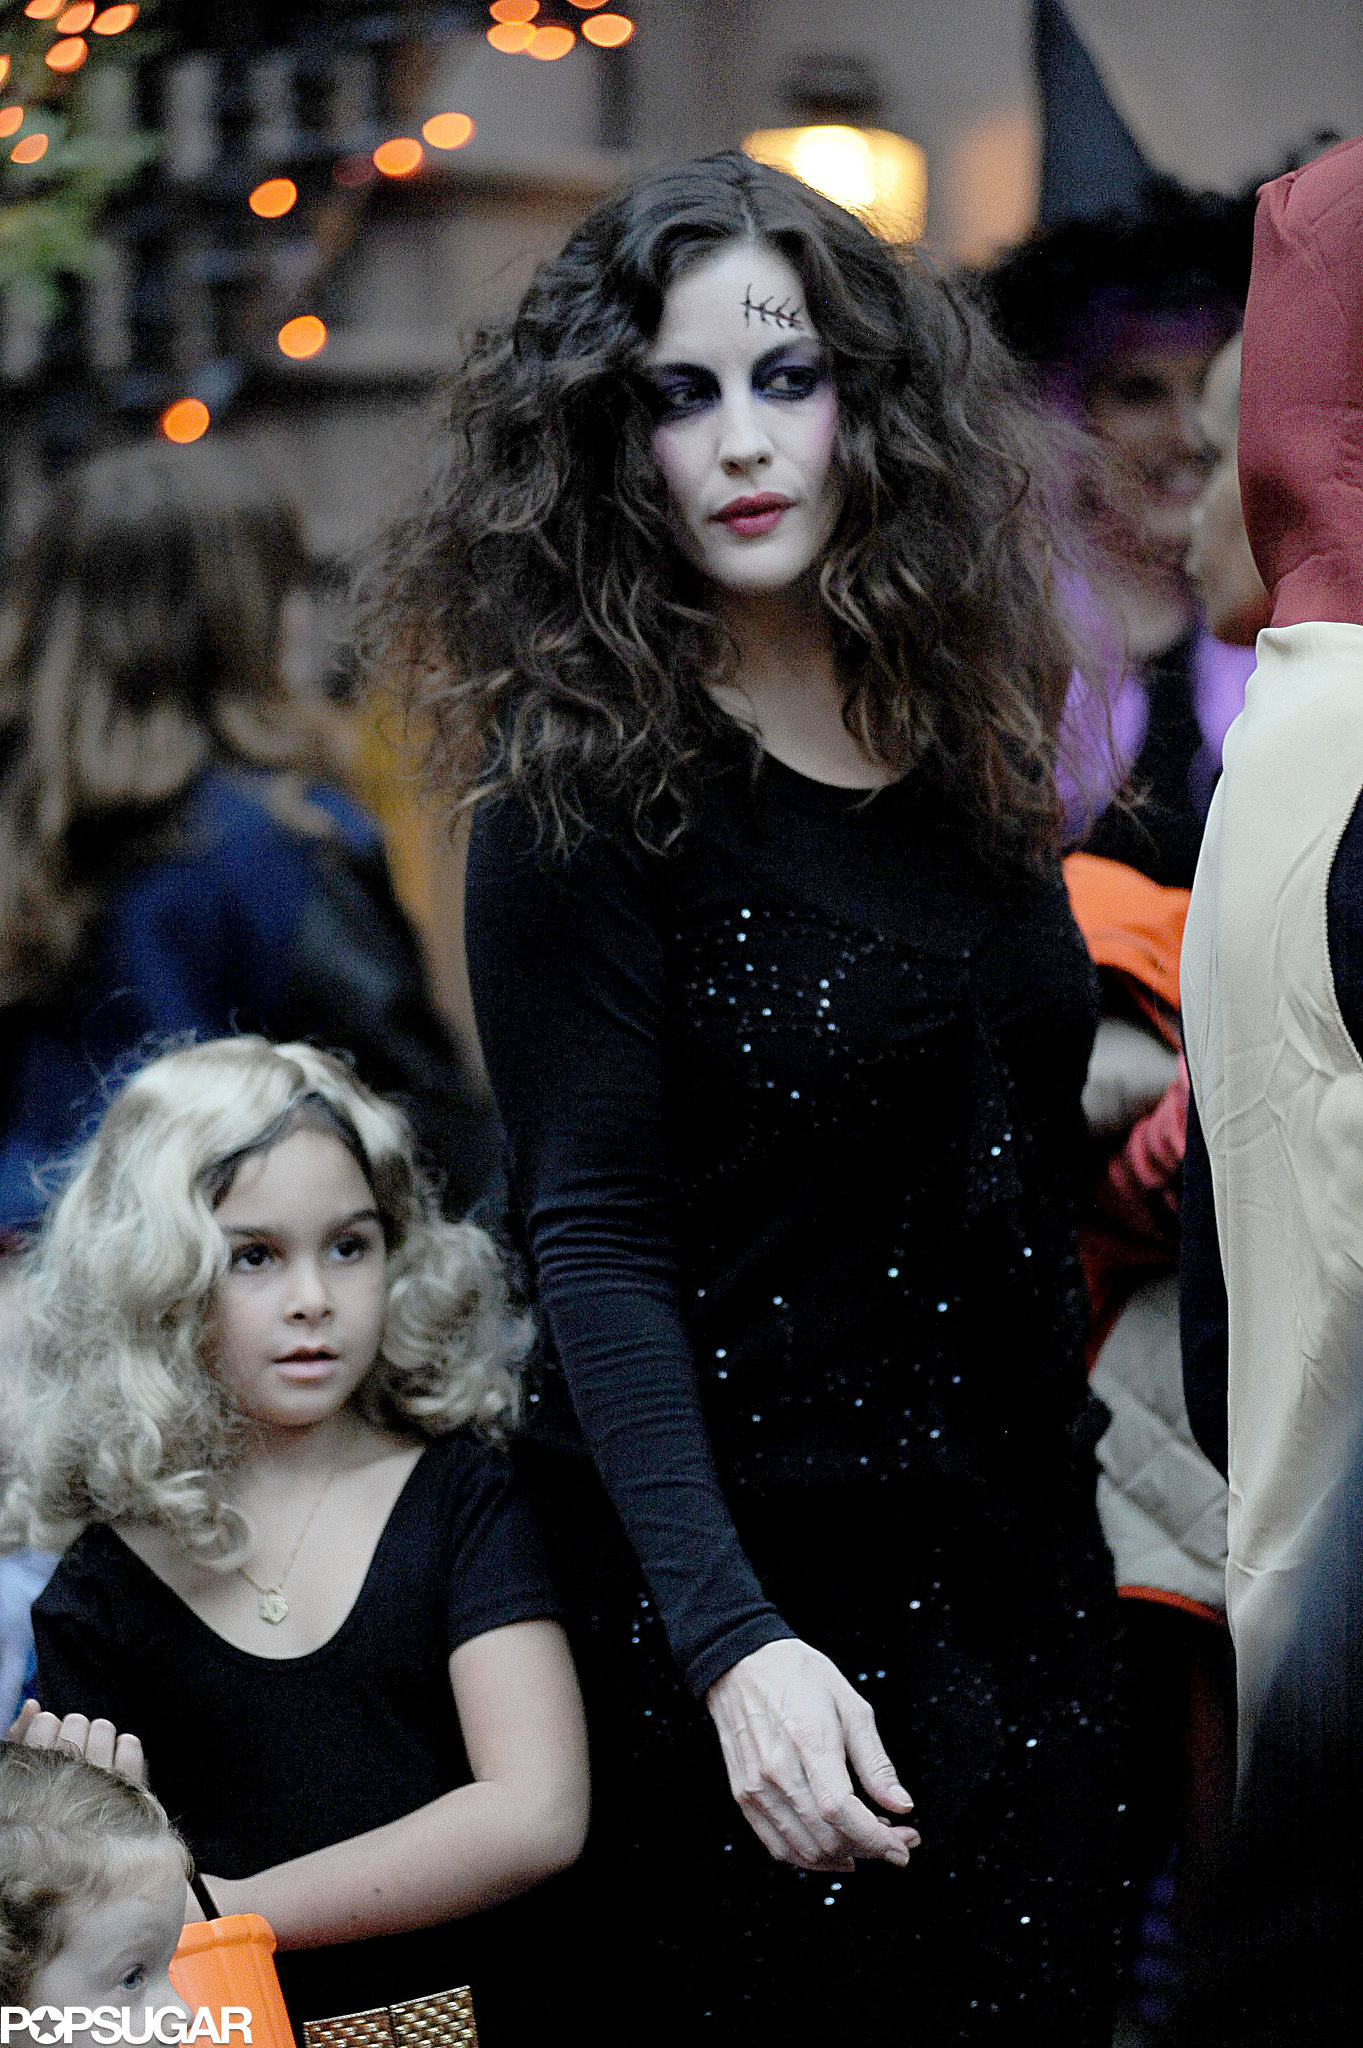 Liv Tyler looked ghoulish while out trick-or-treating in NYC.